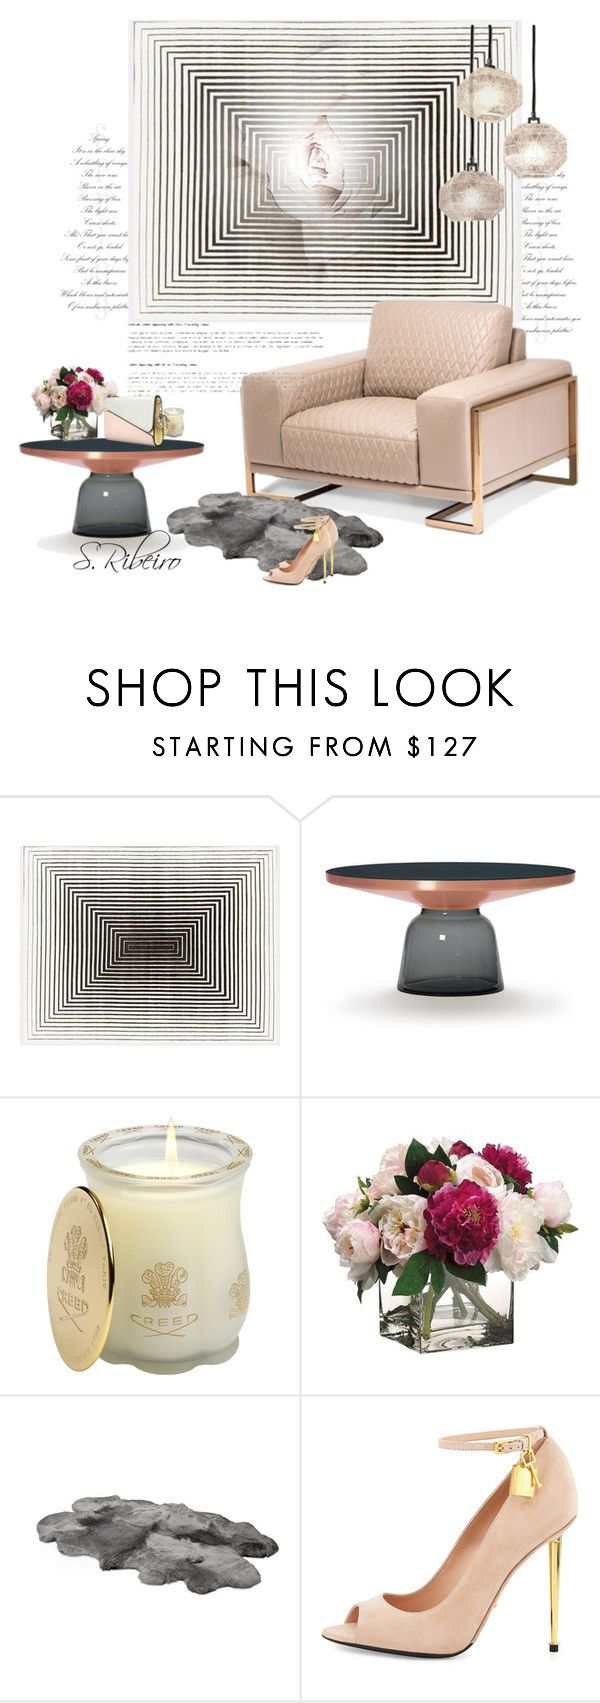 """Sem título #3262"" by sribeiro ❤ liked on Polyvore featuring interior, interiors, interior design, home, home decor, interior decorating, Michael Amini, Creed, Allstate Floral and UGG Australia"